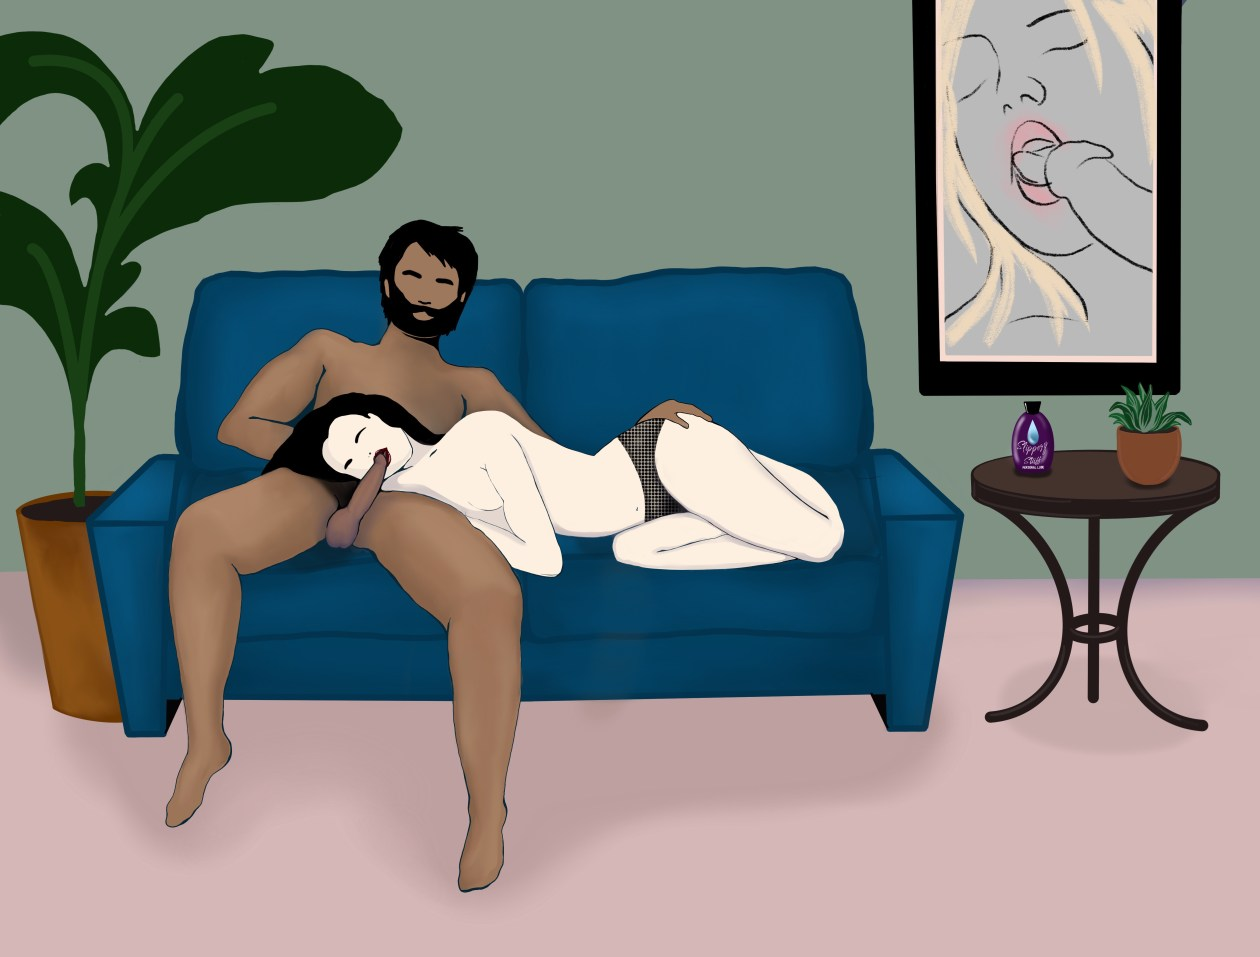 Drawing of a woman giving a man a blow job - he is sitting, legs spread, on a blue sofa, and she is lying next to him with her head in his lap. She is wearing knickers, and his hand is lying gently and intimately on her butt. In the background there is a pot plant, a coffee table with a bottle of lube on it, and a painting featuring erotic art.